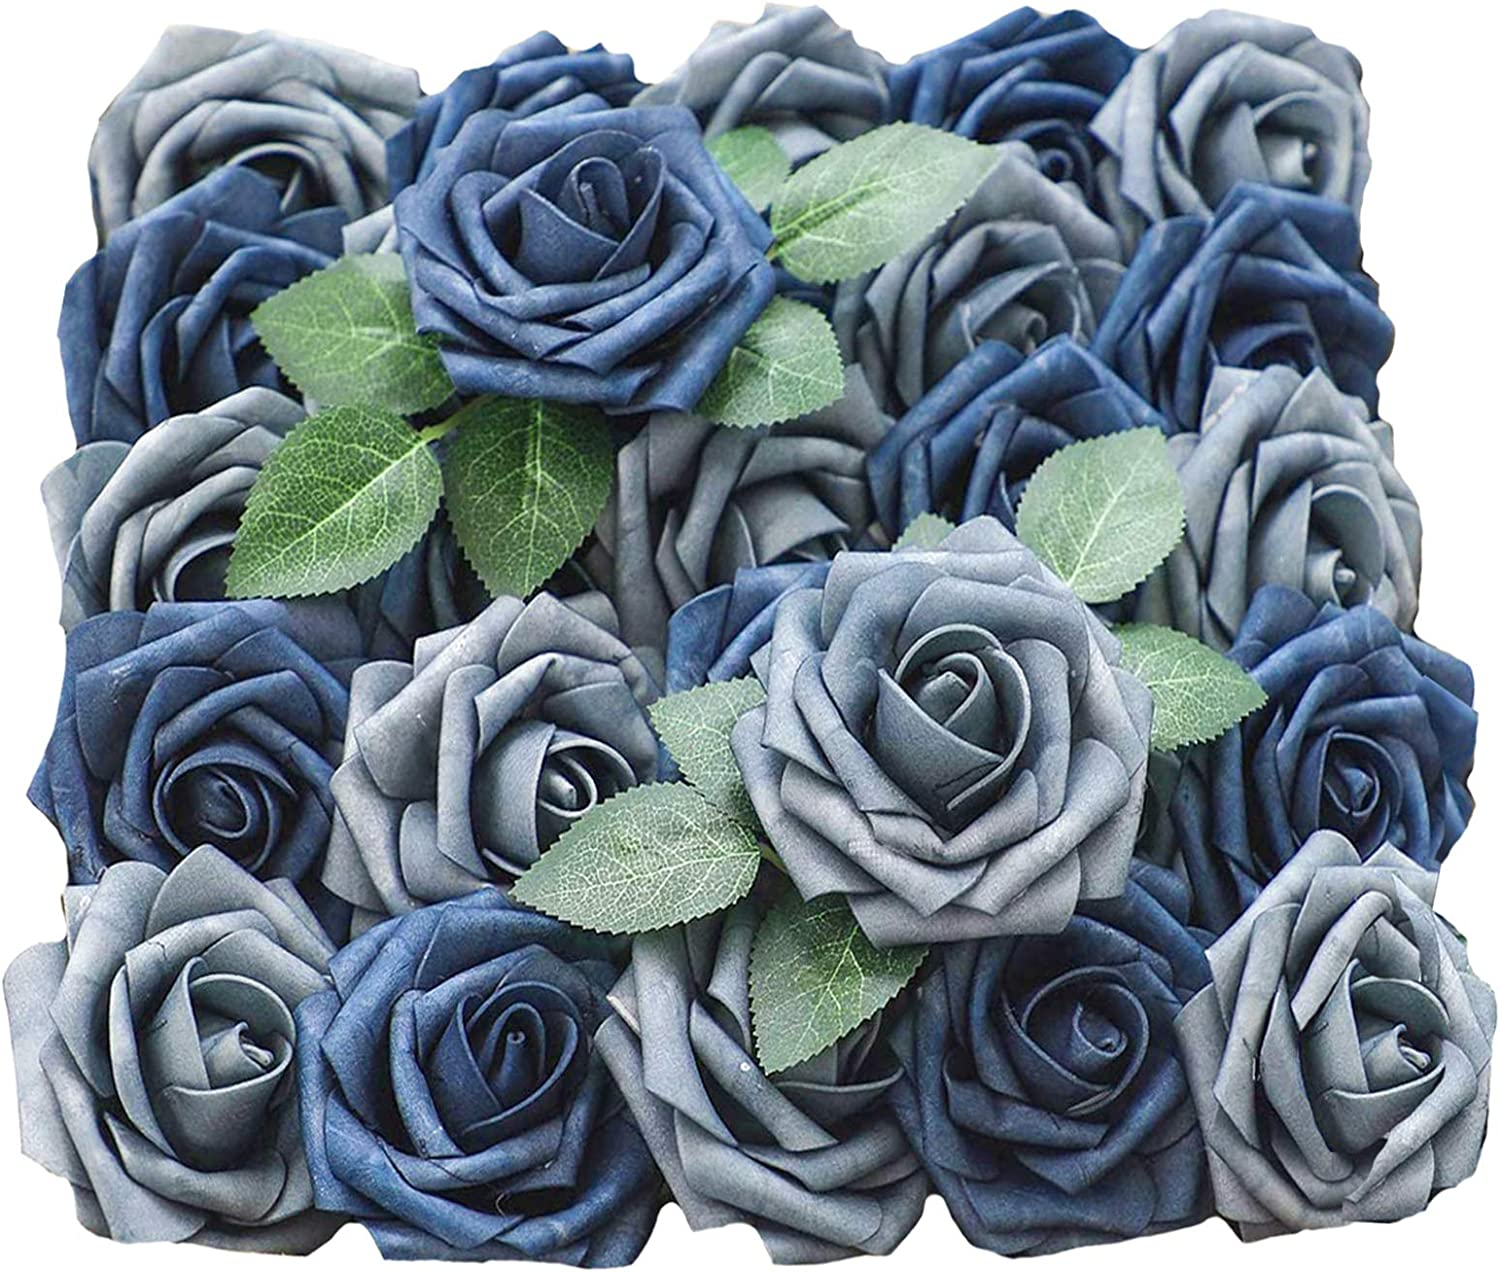 Lmeison Artificial Flowers Dusty Blue Shades Rose, 50pcs Real Looking Fake Roses w/Stem with 4 Leaves for Bridal Wedding Bouquets Centerpieces Baby Shower DIY Party Home Decor